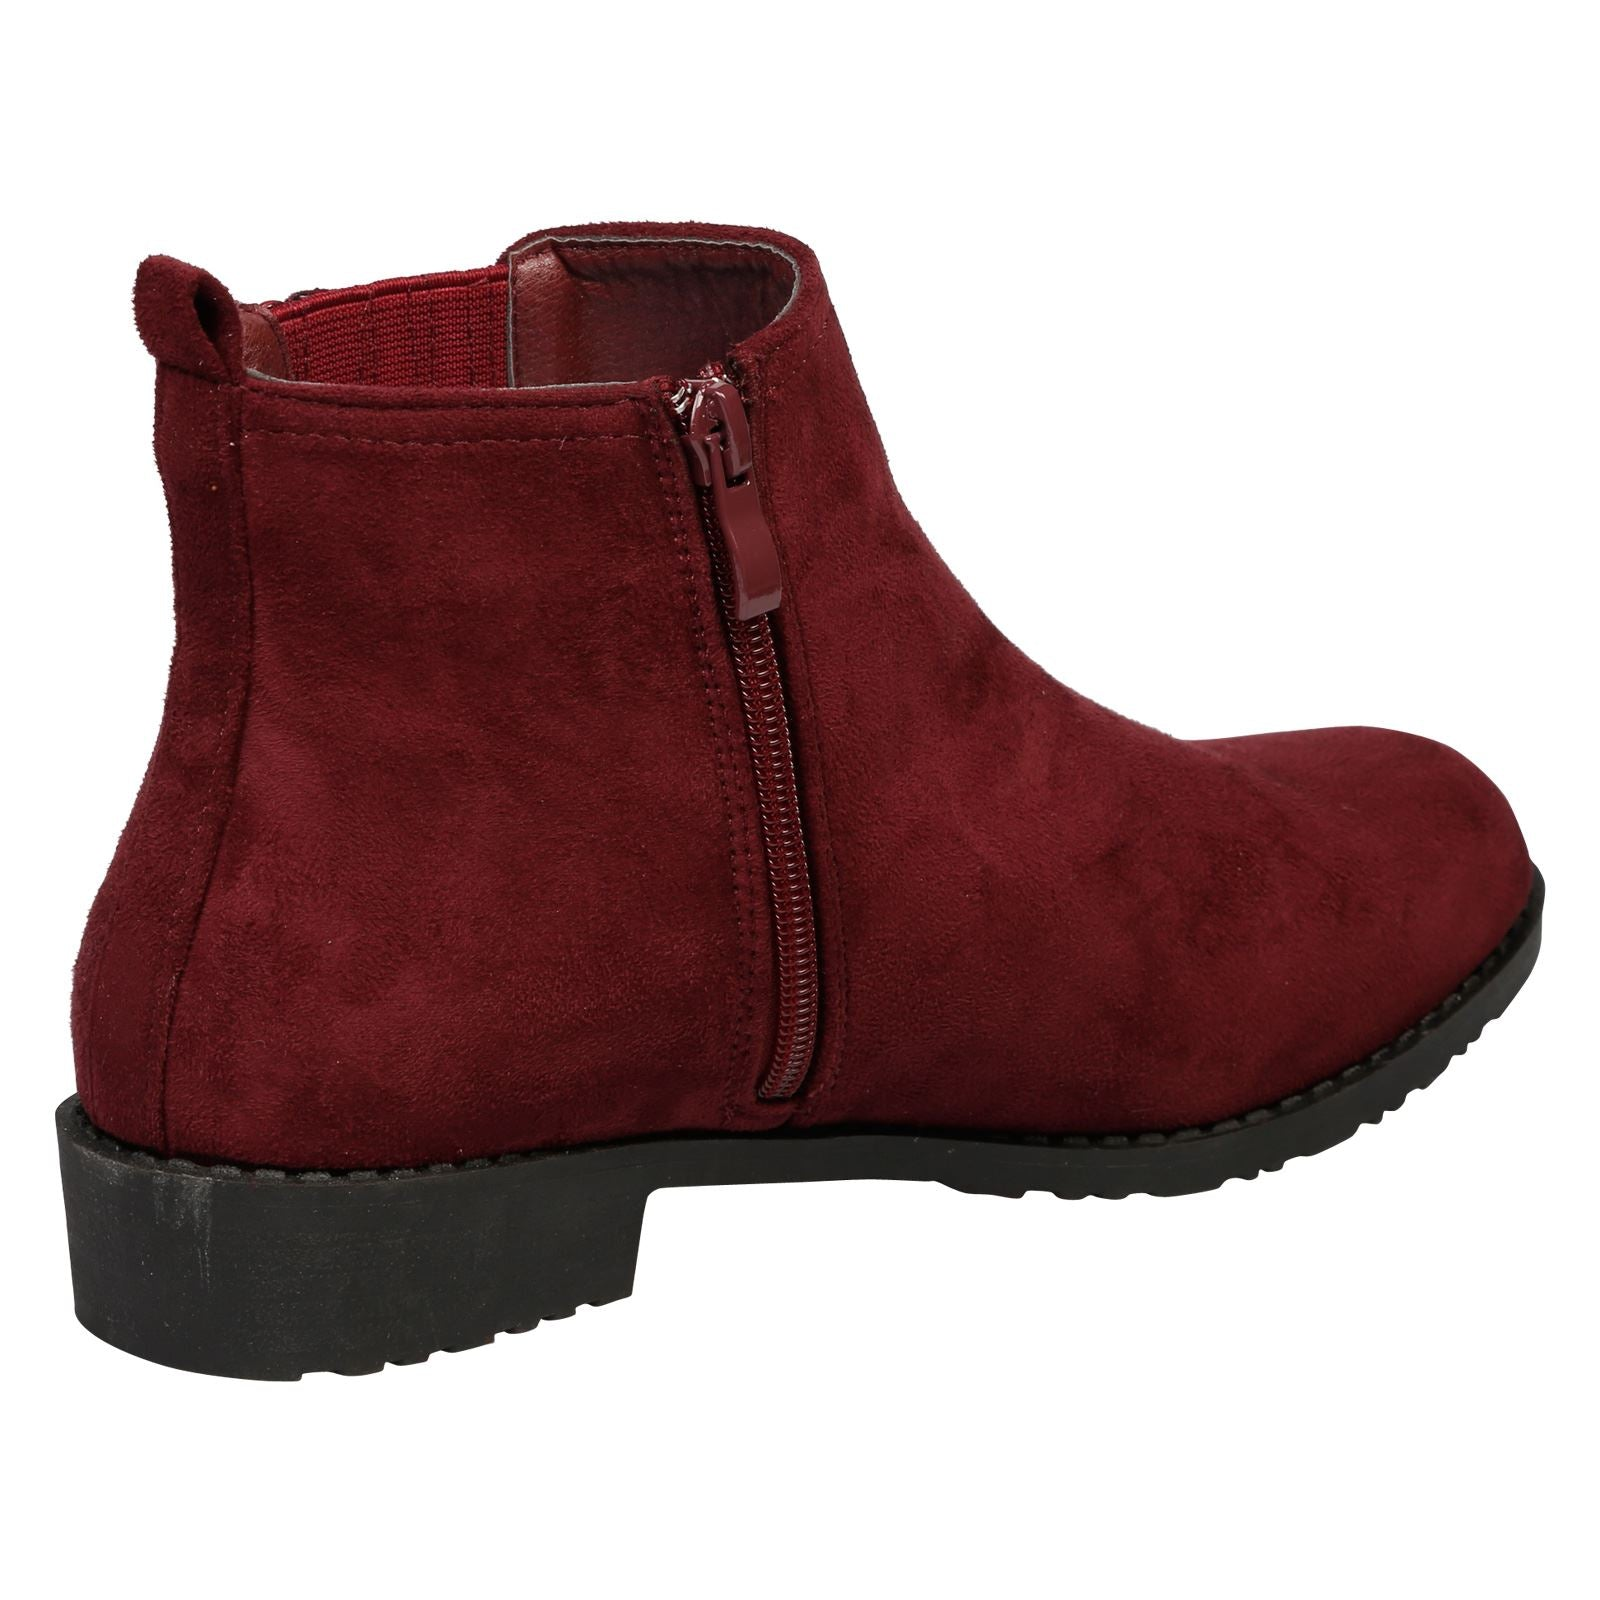 Cara Low Heel Ankle Boots in Wine Faux Suede - Feet First Fashion